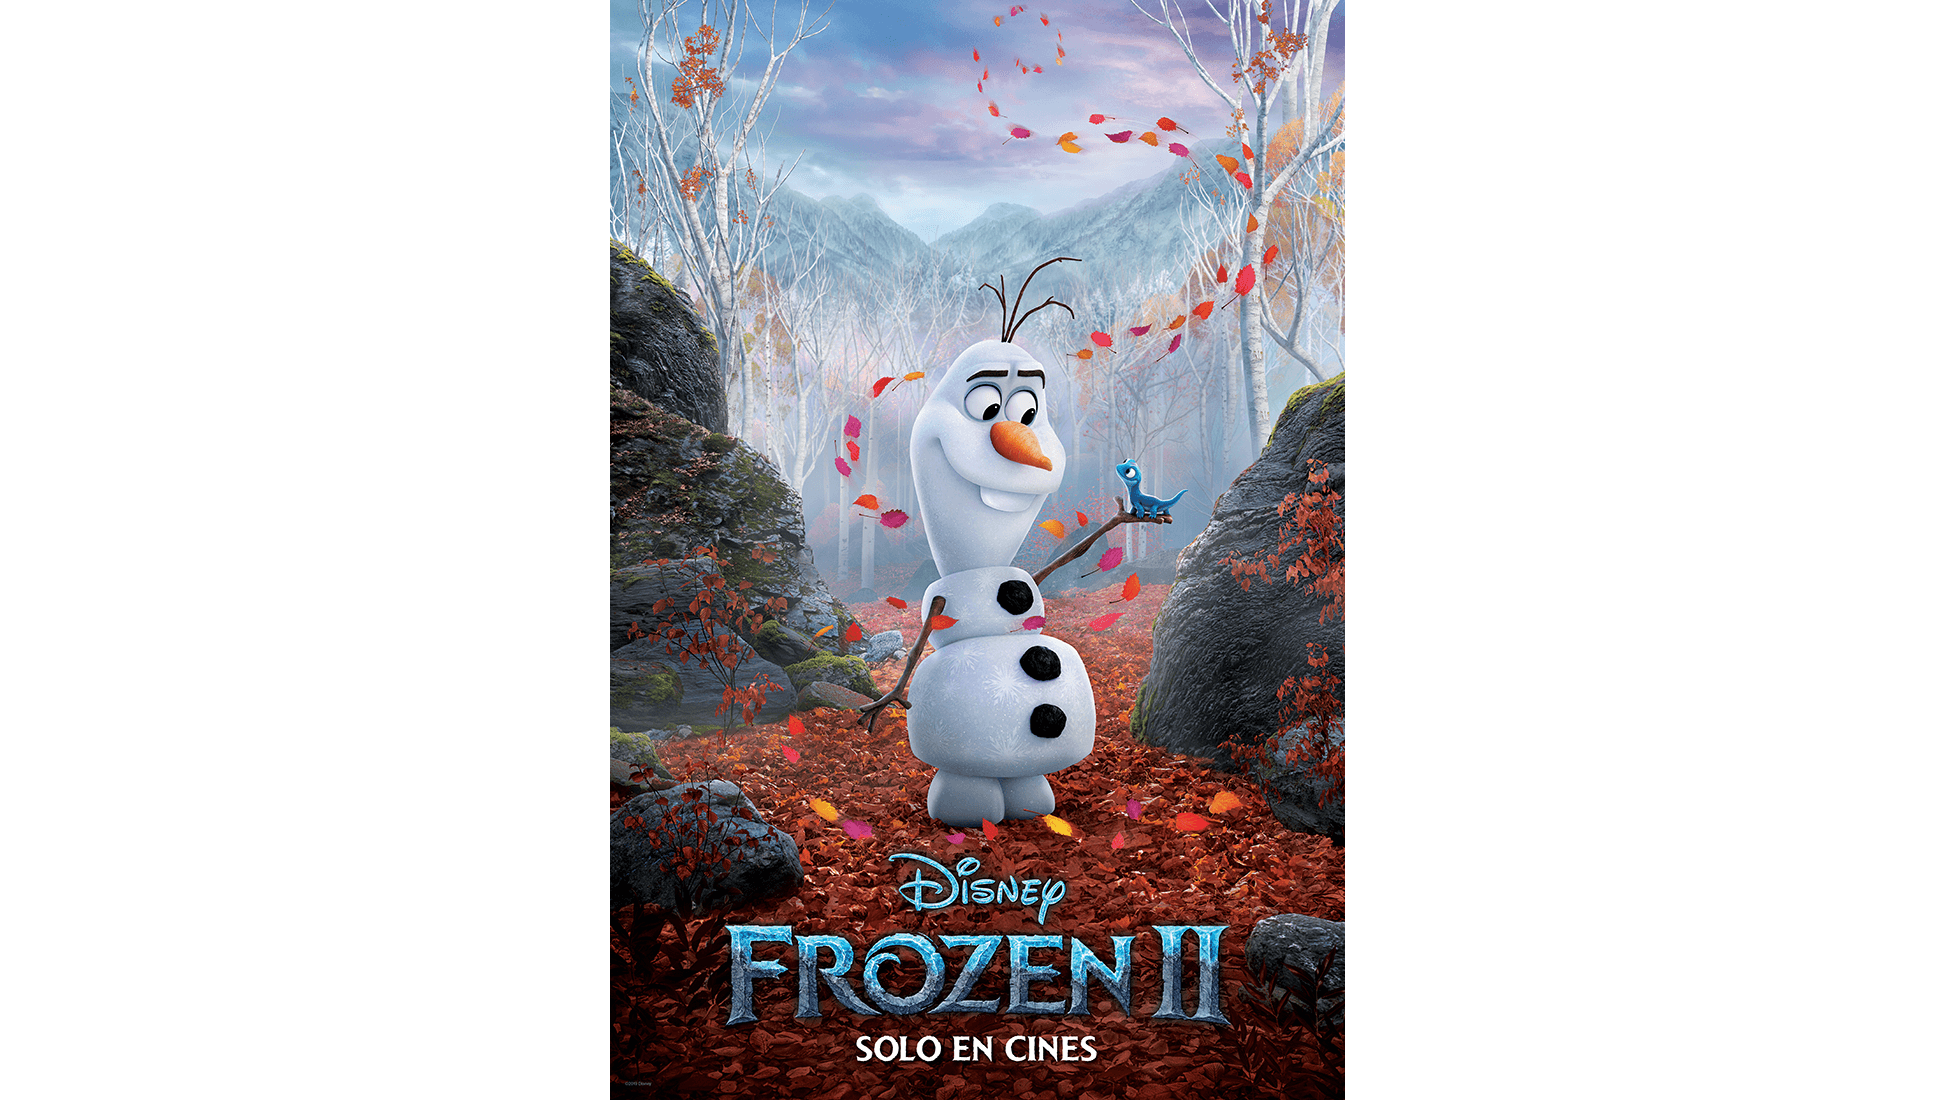 Frozen 2 - Poster Olaf